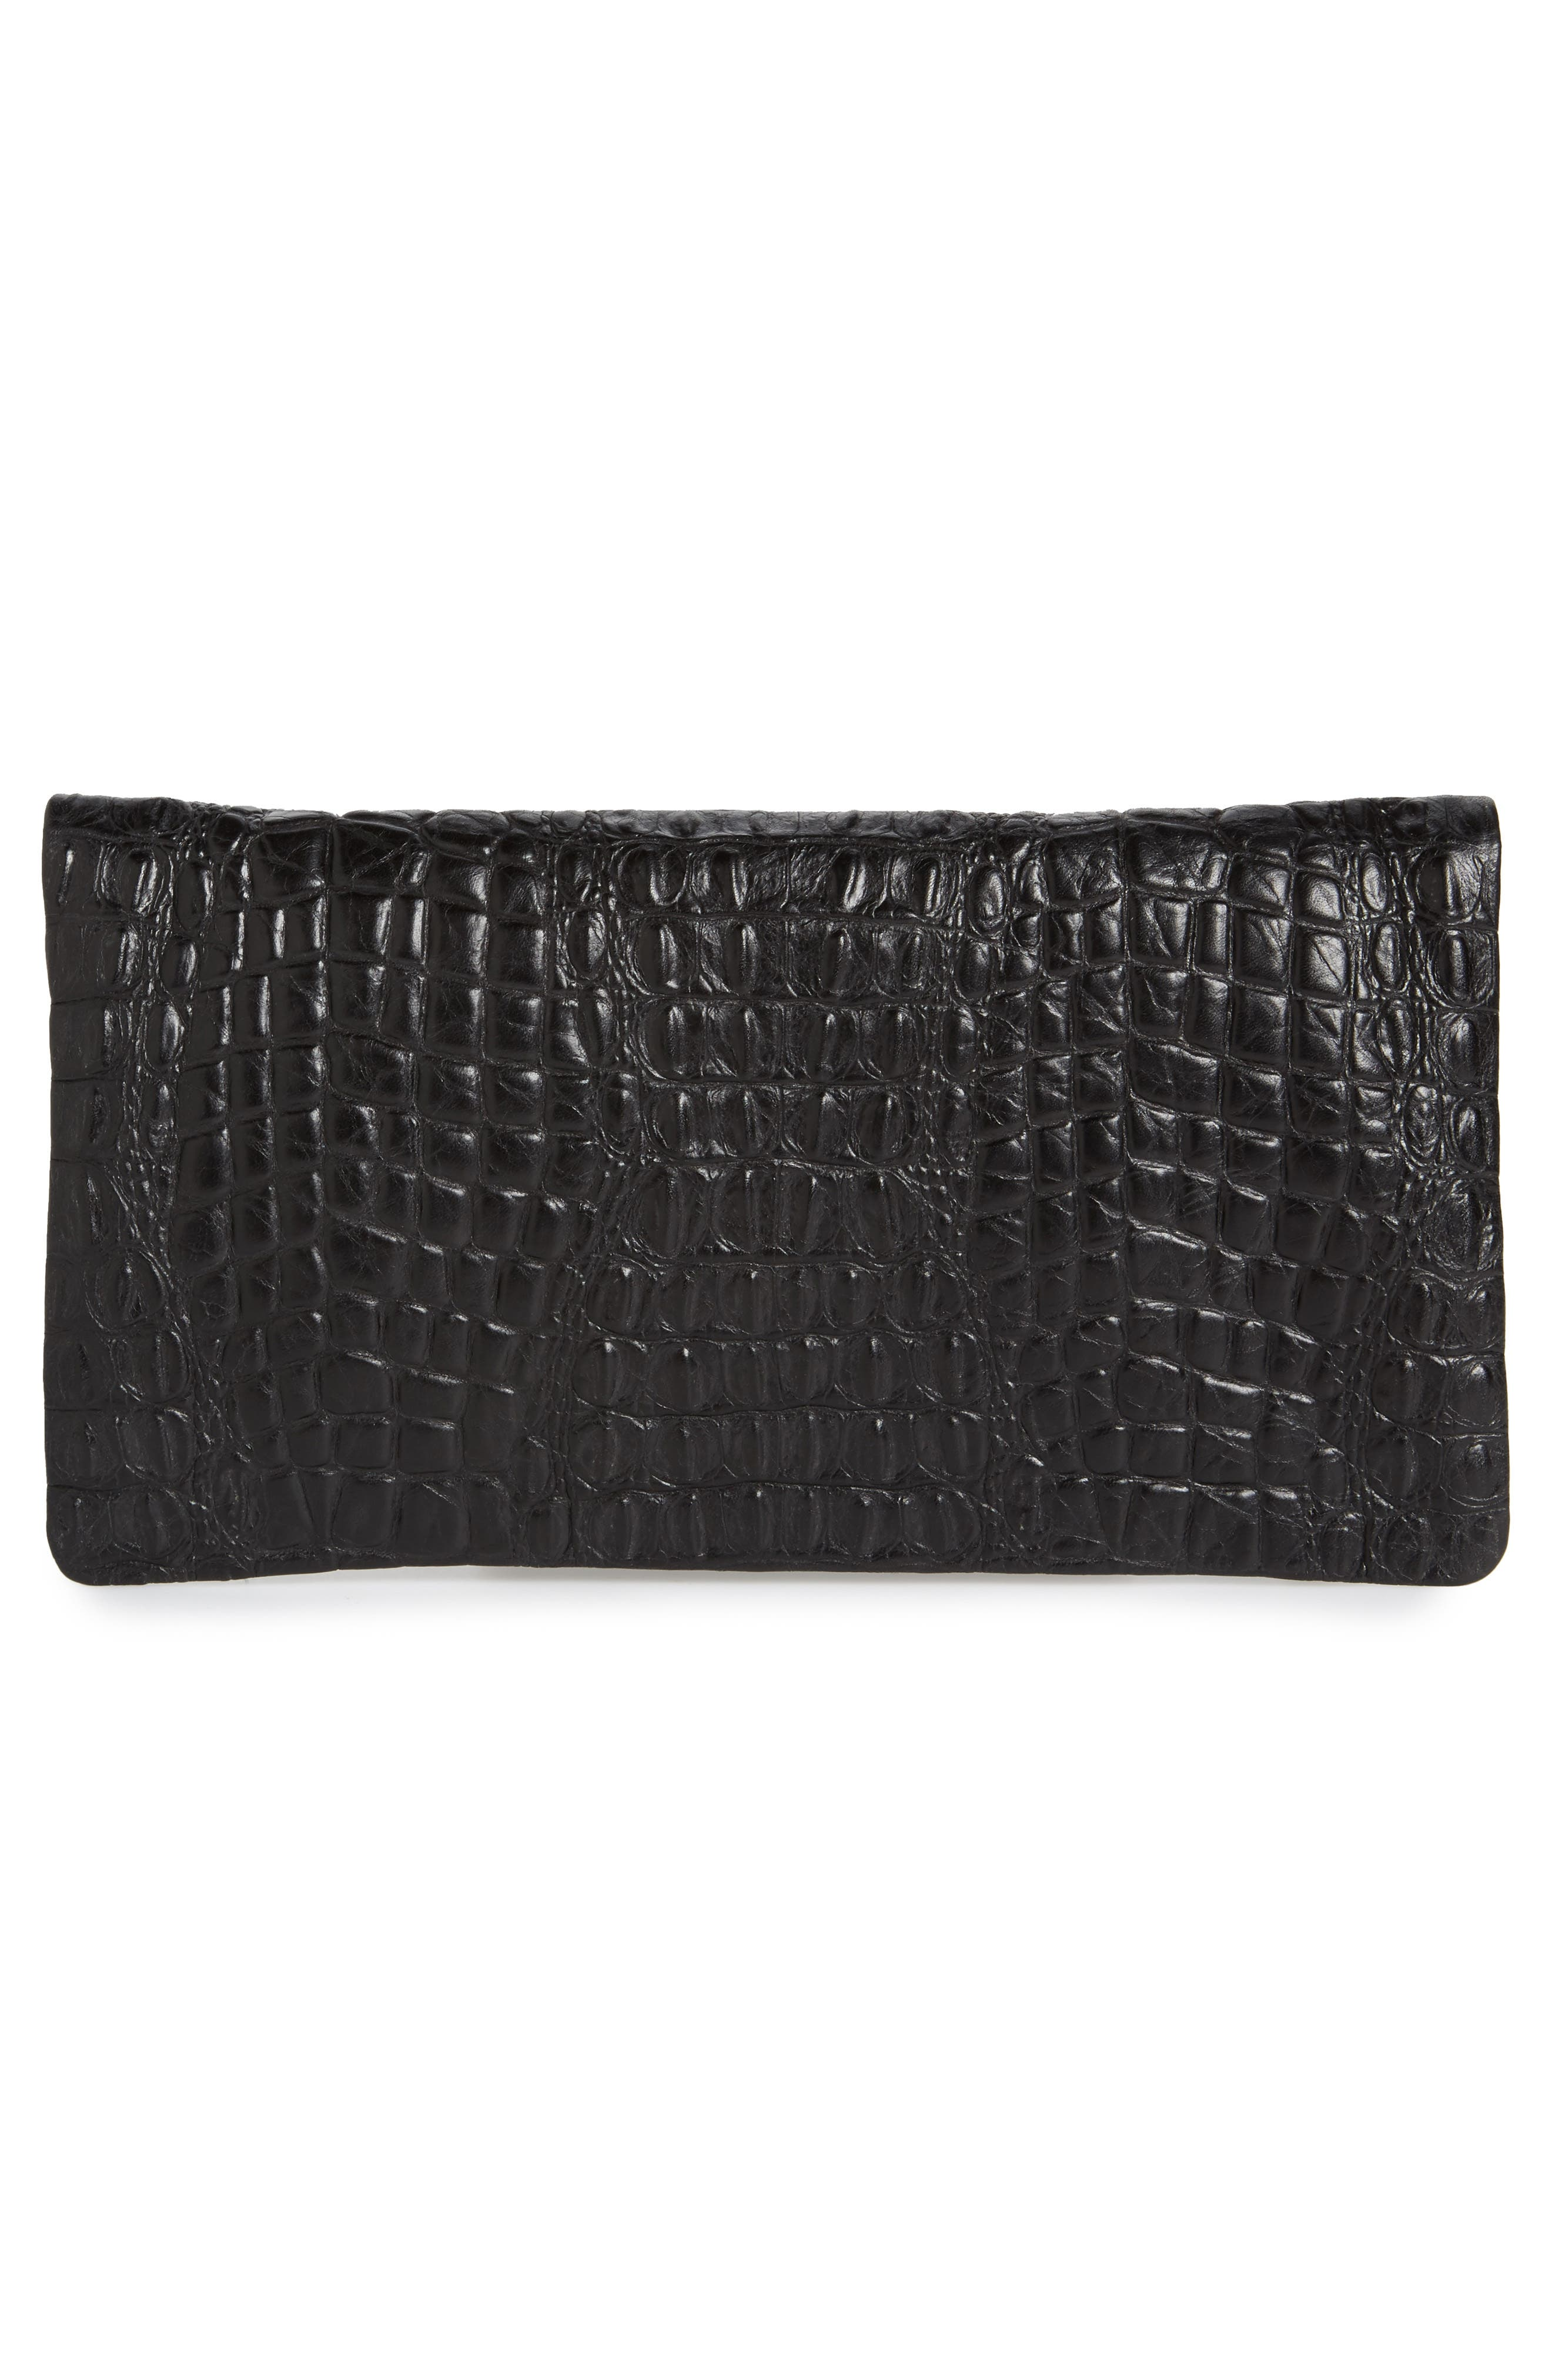 Croc Embossed Leather Foldover Clutch,                             Alternate thumbnail 3, color,                             001